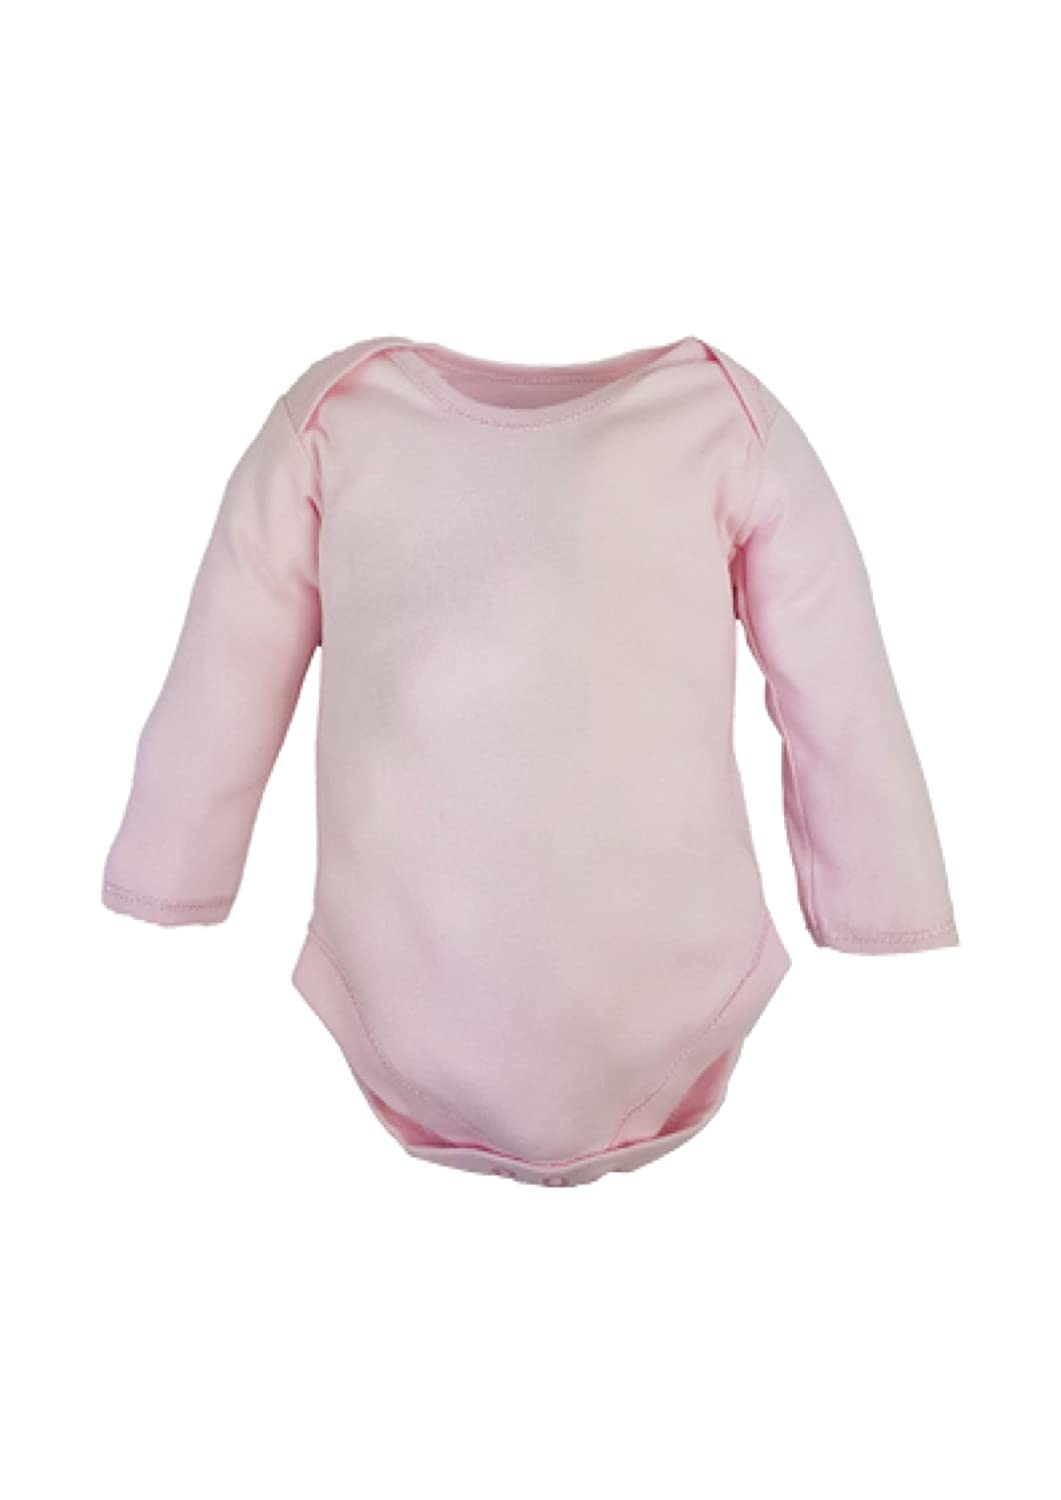 Mini munchkin 6 Rompers Pink Plain Long Sleeve Body Vests Rompers